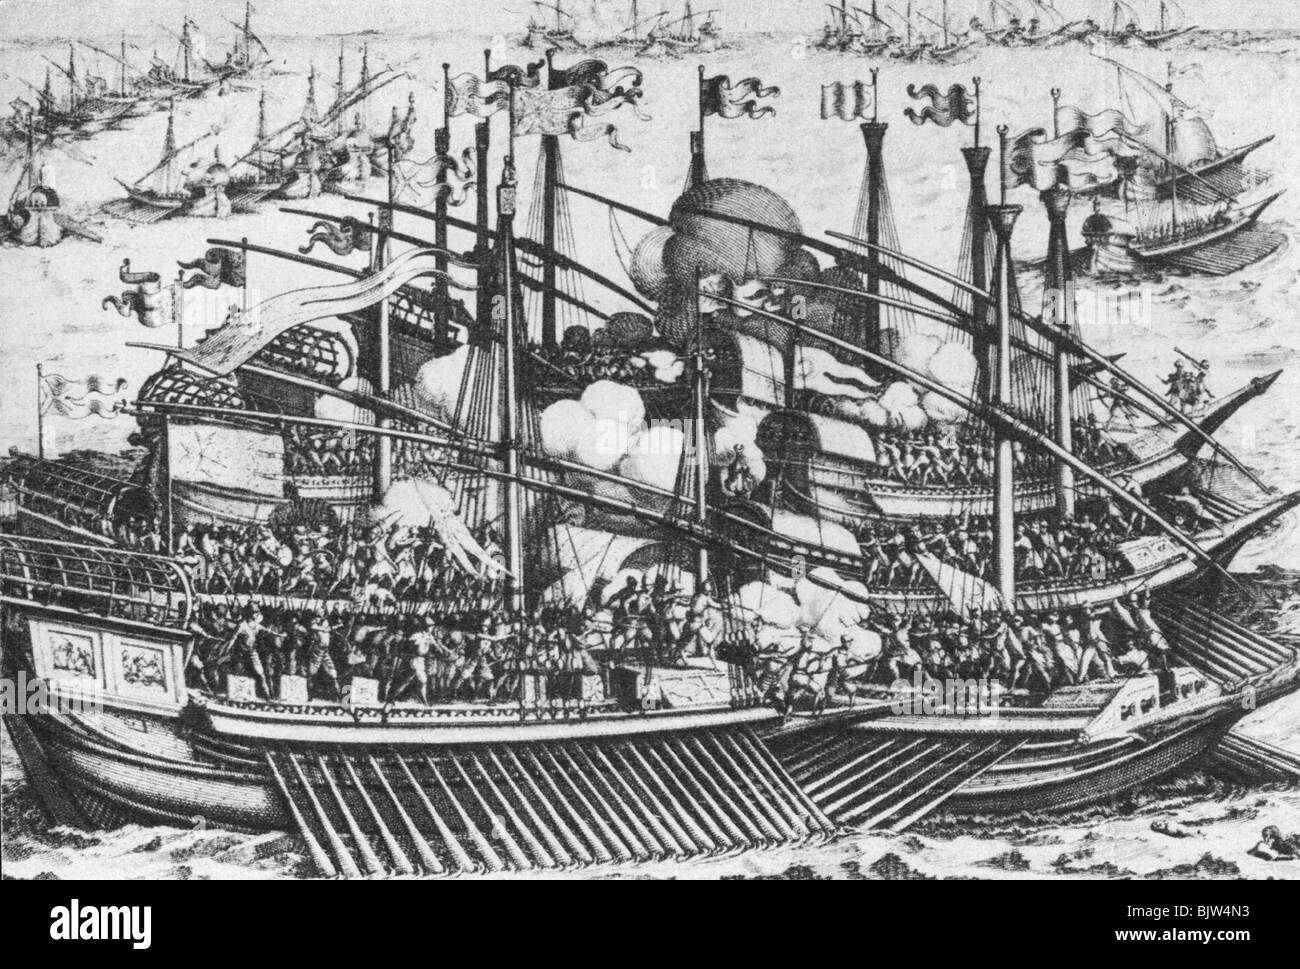 Middle Ages, crusades, naval battle, Christian ships against the Turkish army, historic, historical, crusader, crusaders, - Stock Image